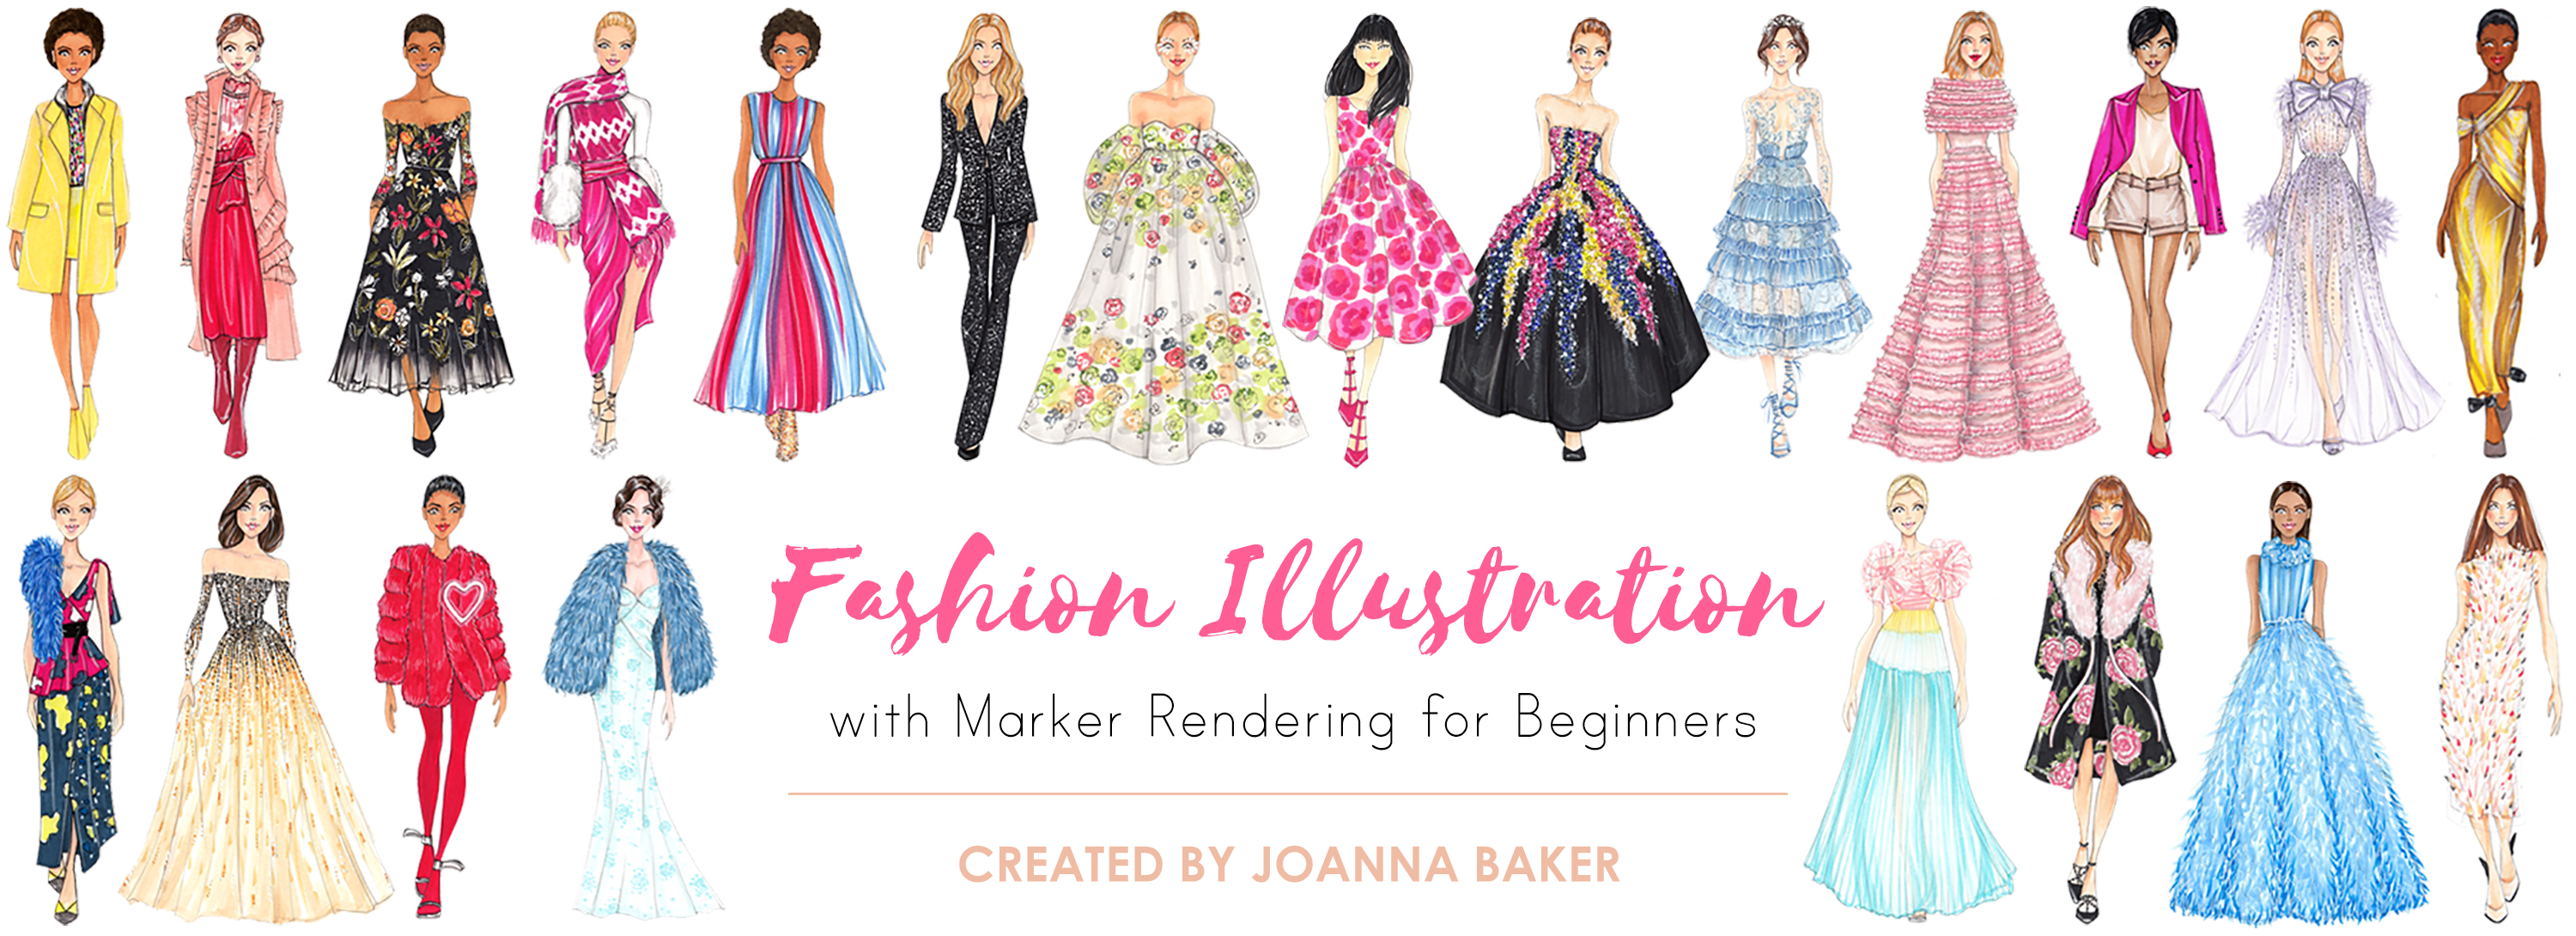 Fashion Illustration with Marker Rendering for Beginners